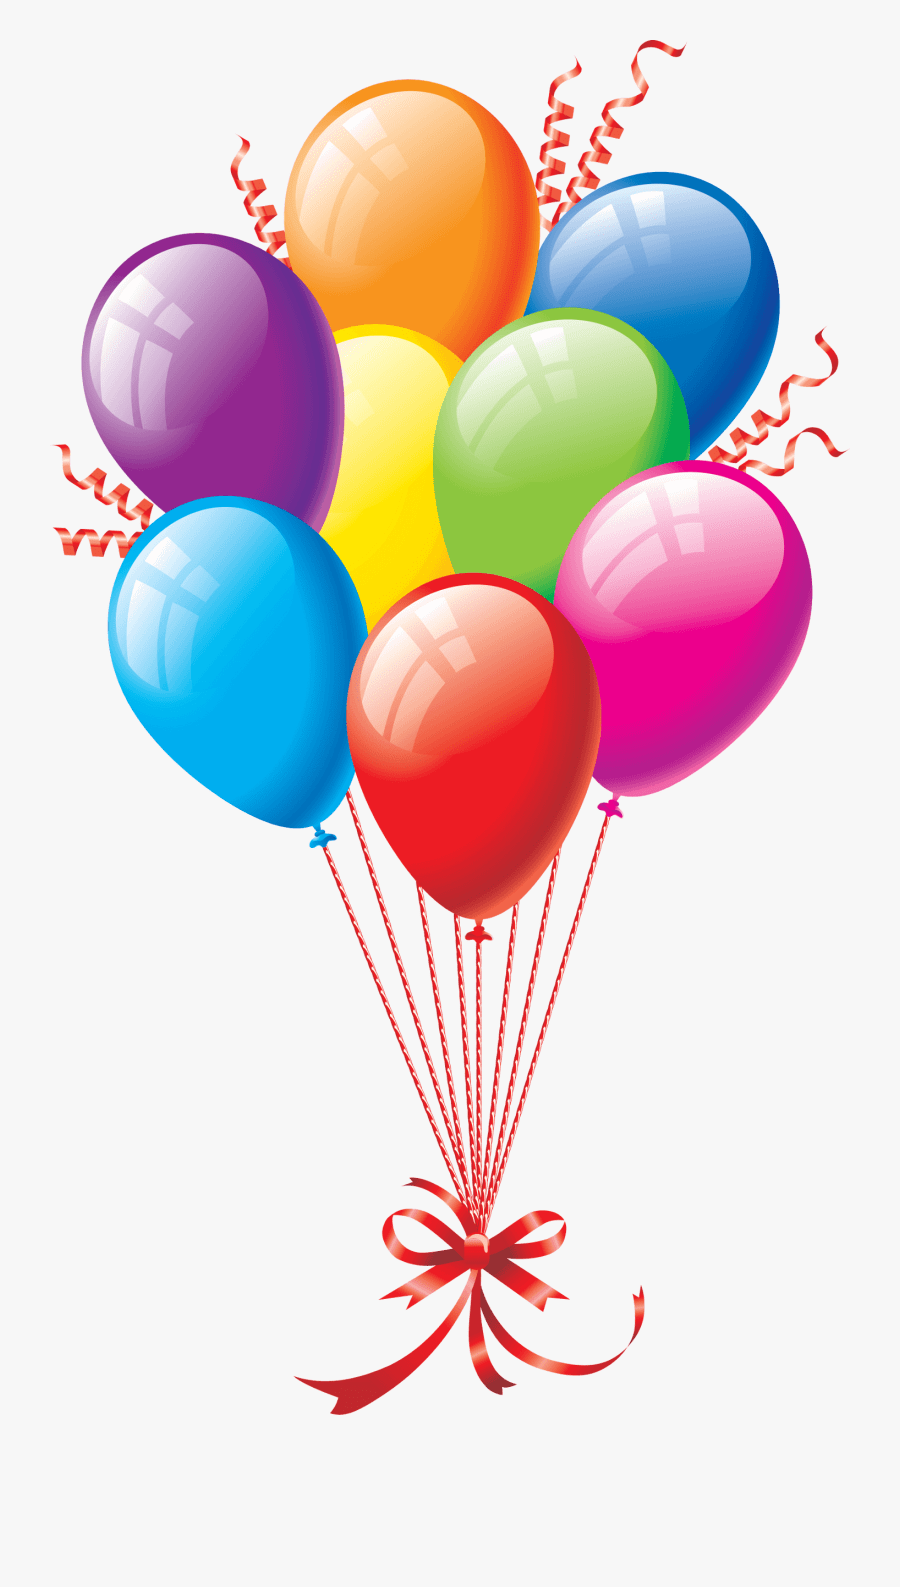 Birthday Clipart For Him : birthday, clipart, Happy, Birthday, Clipart, Tubes, Transparent, Background, Balloon, ClipartKey